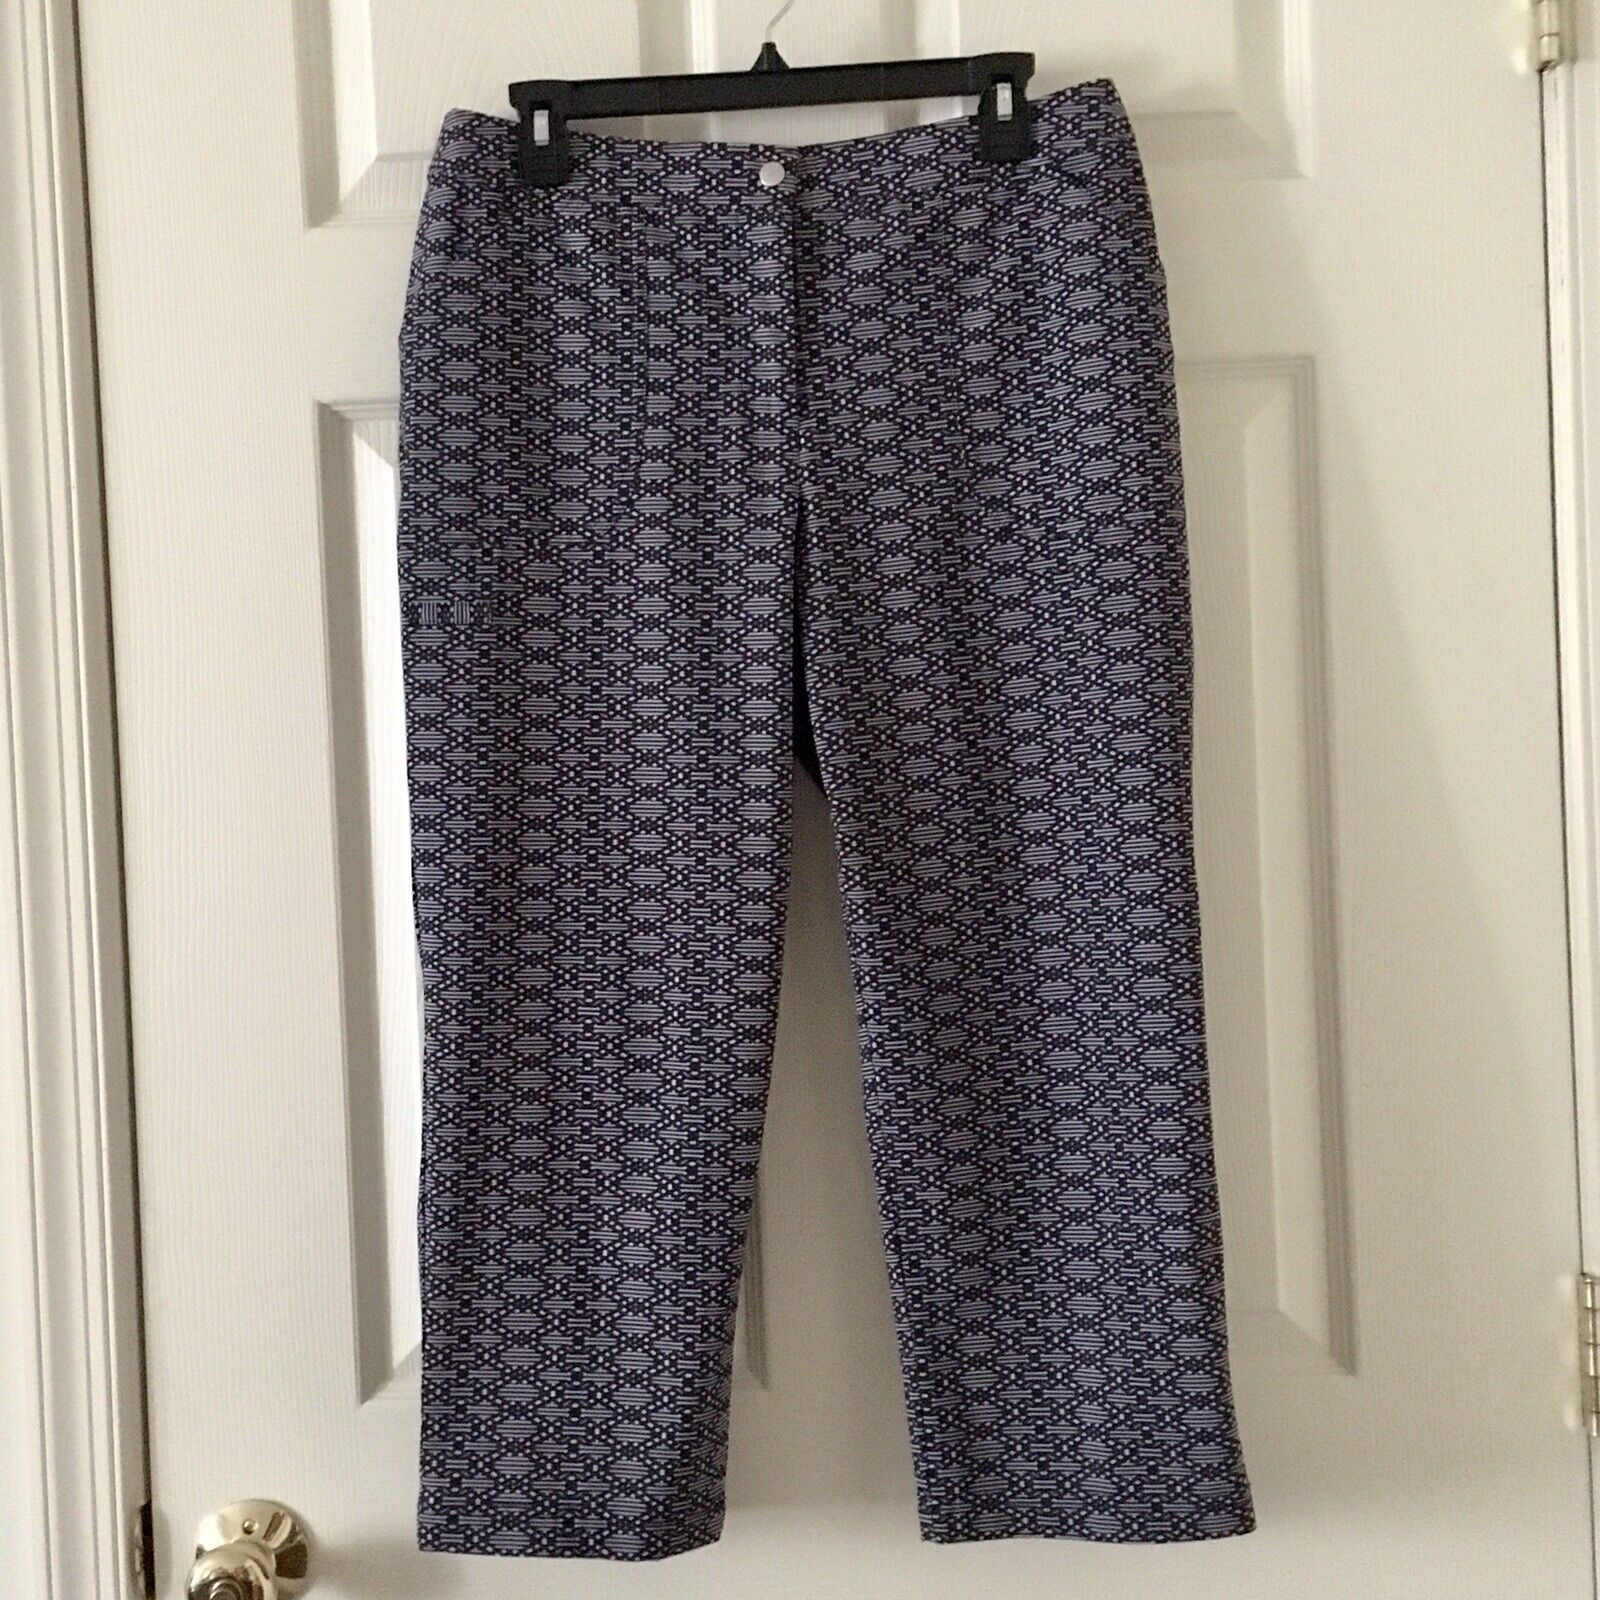 NWOT Women's Weekends by Chico's Black & White Capris - Chico's Size 1 (Medium)